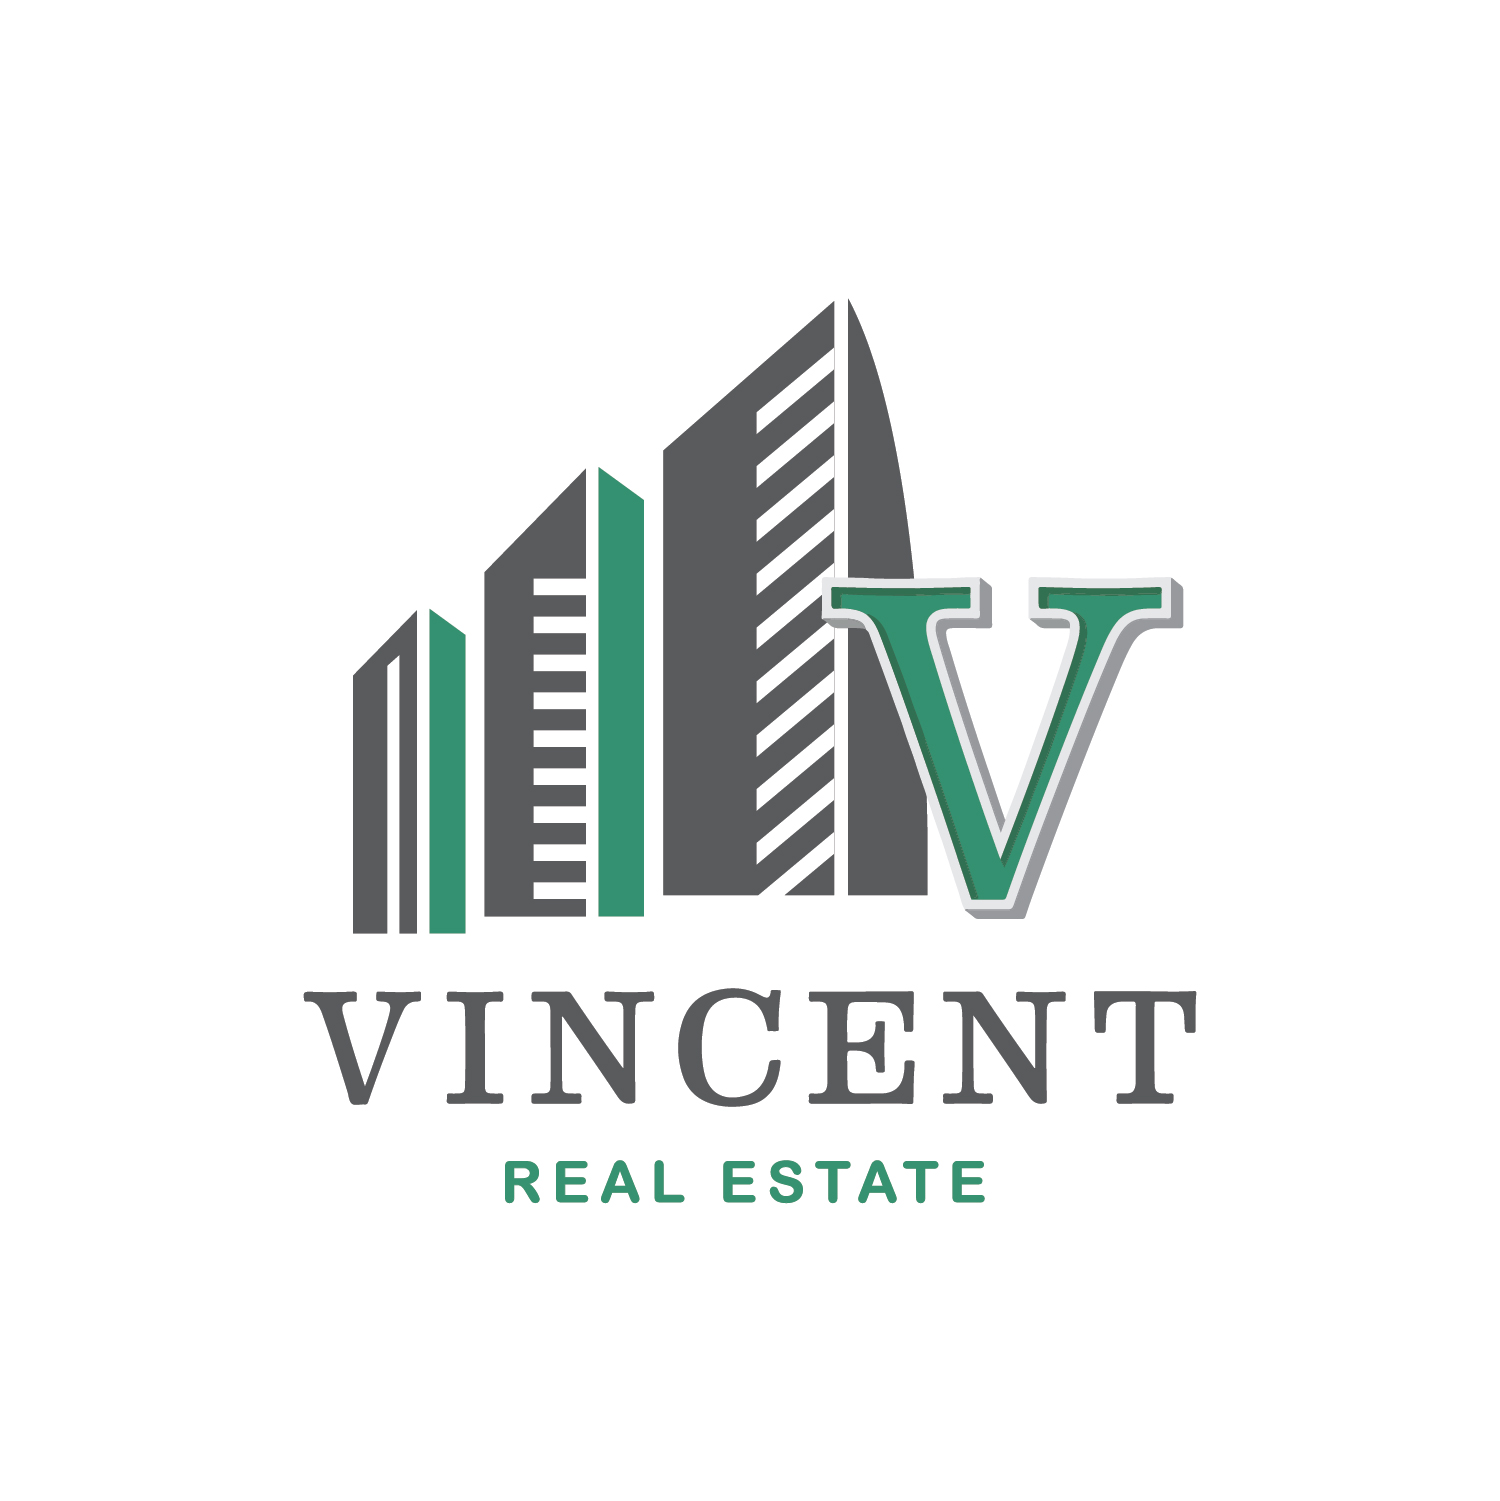 Vincent Real Estate Square Logo